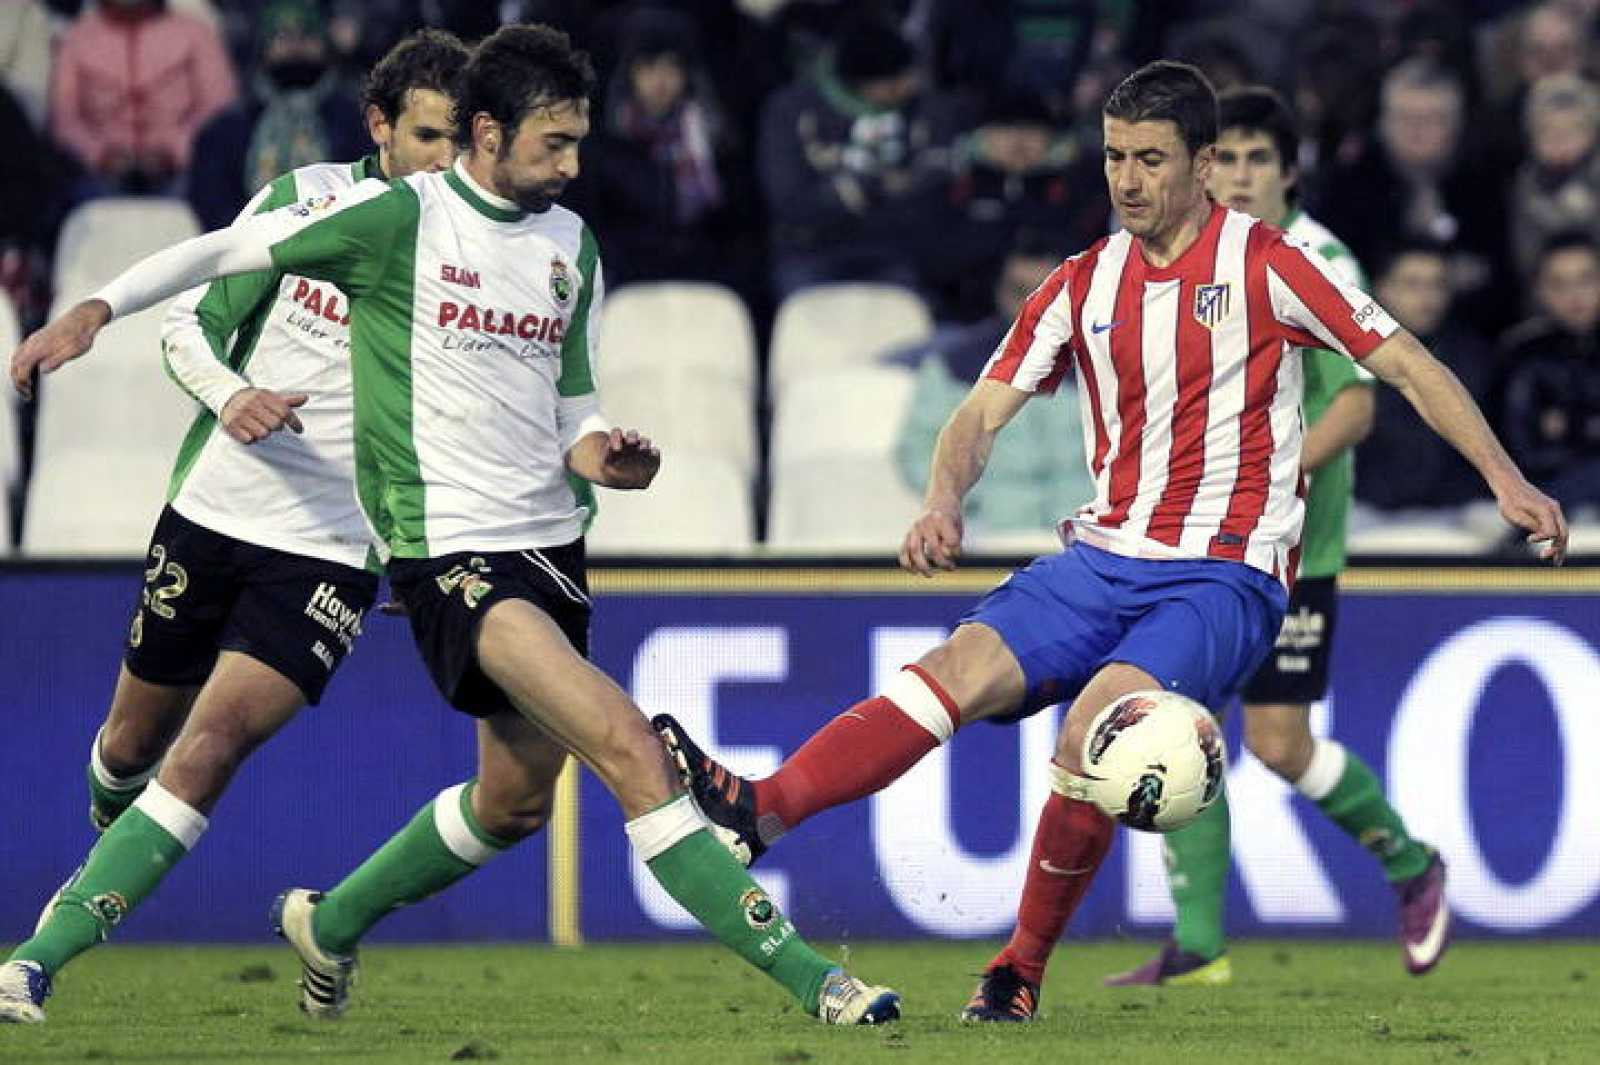 RACING DE SANTANDER - ATLETICO DE MADRID